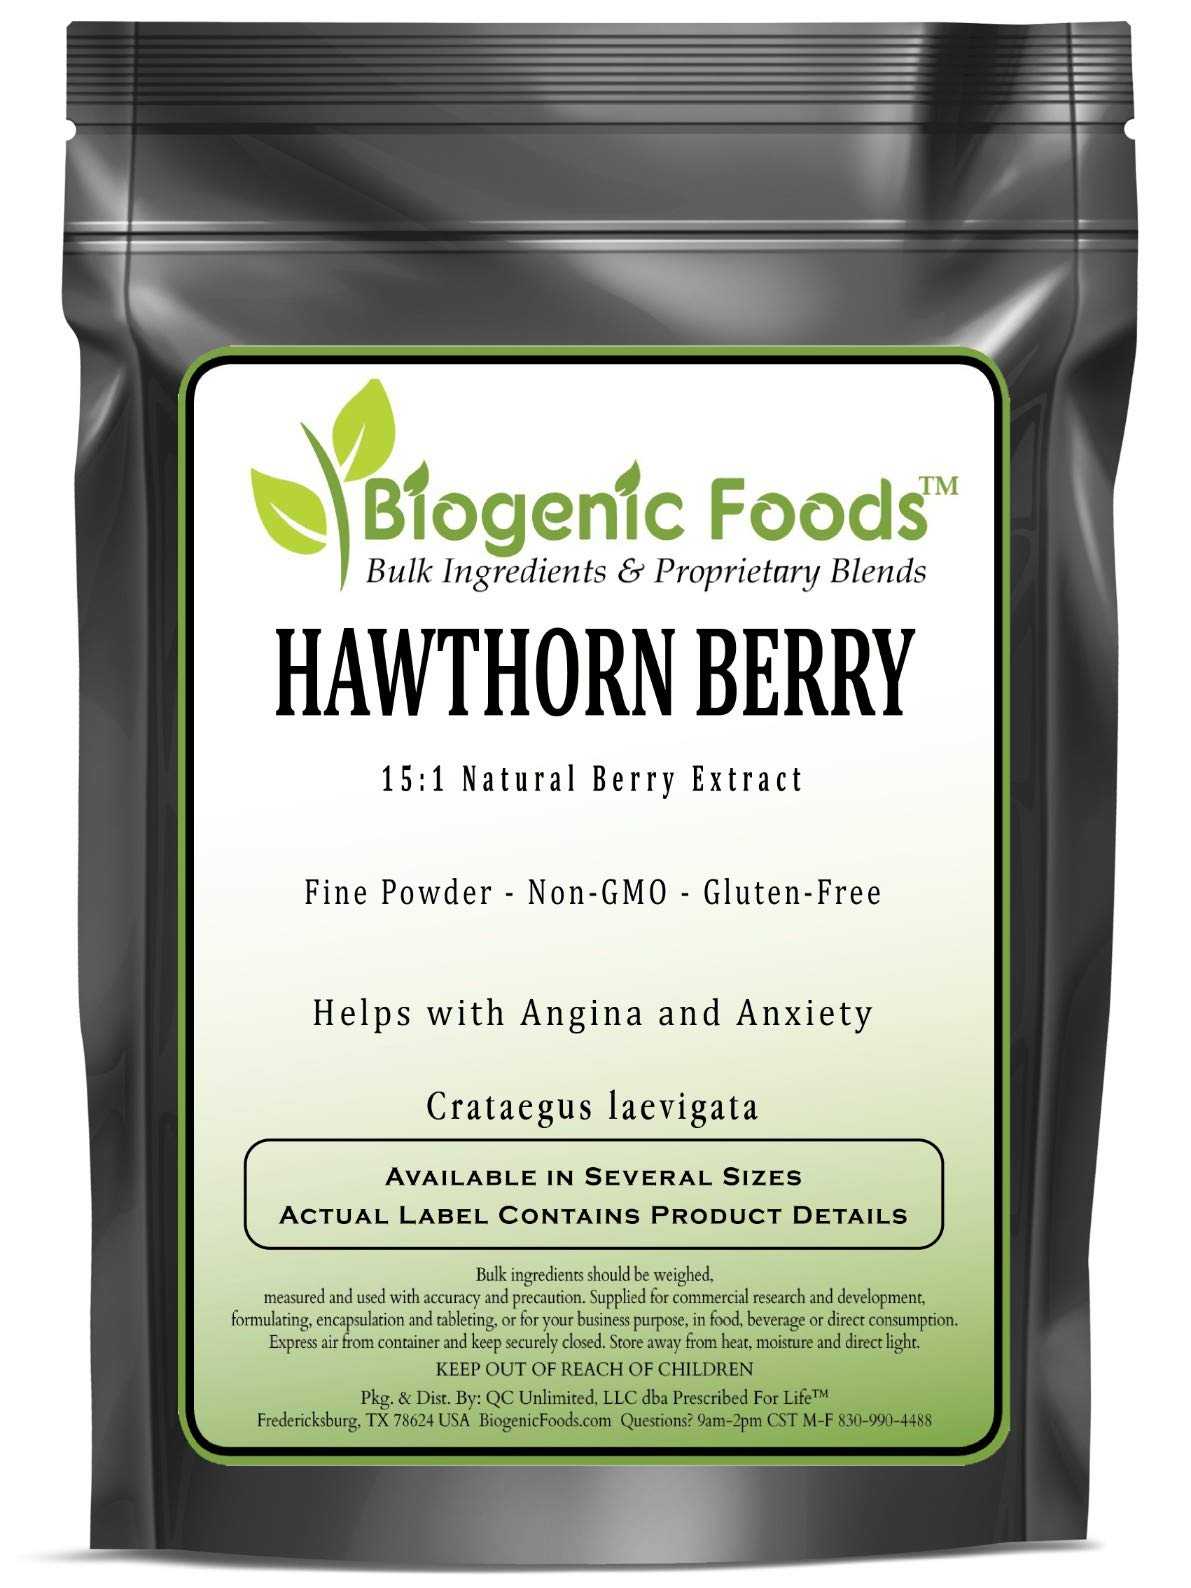 Hawthorn Berry - 15:1 Natural Berry Fine Powder Extract (Crataegus laevigata), 5 kg